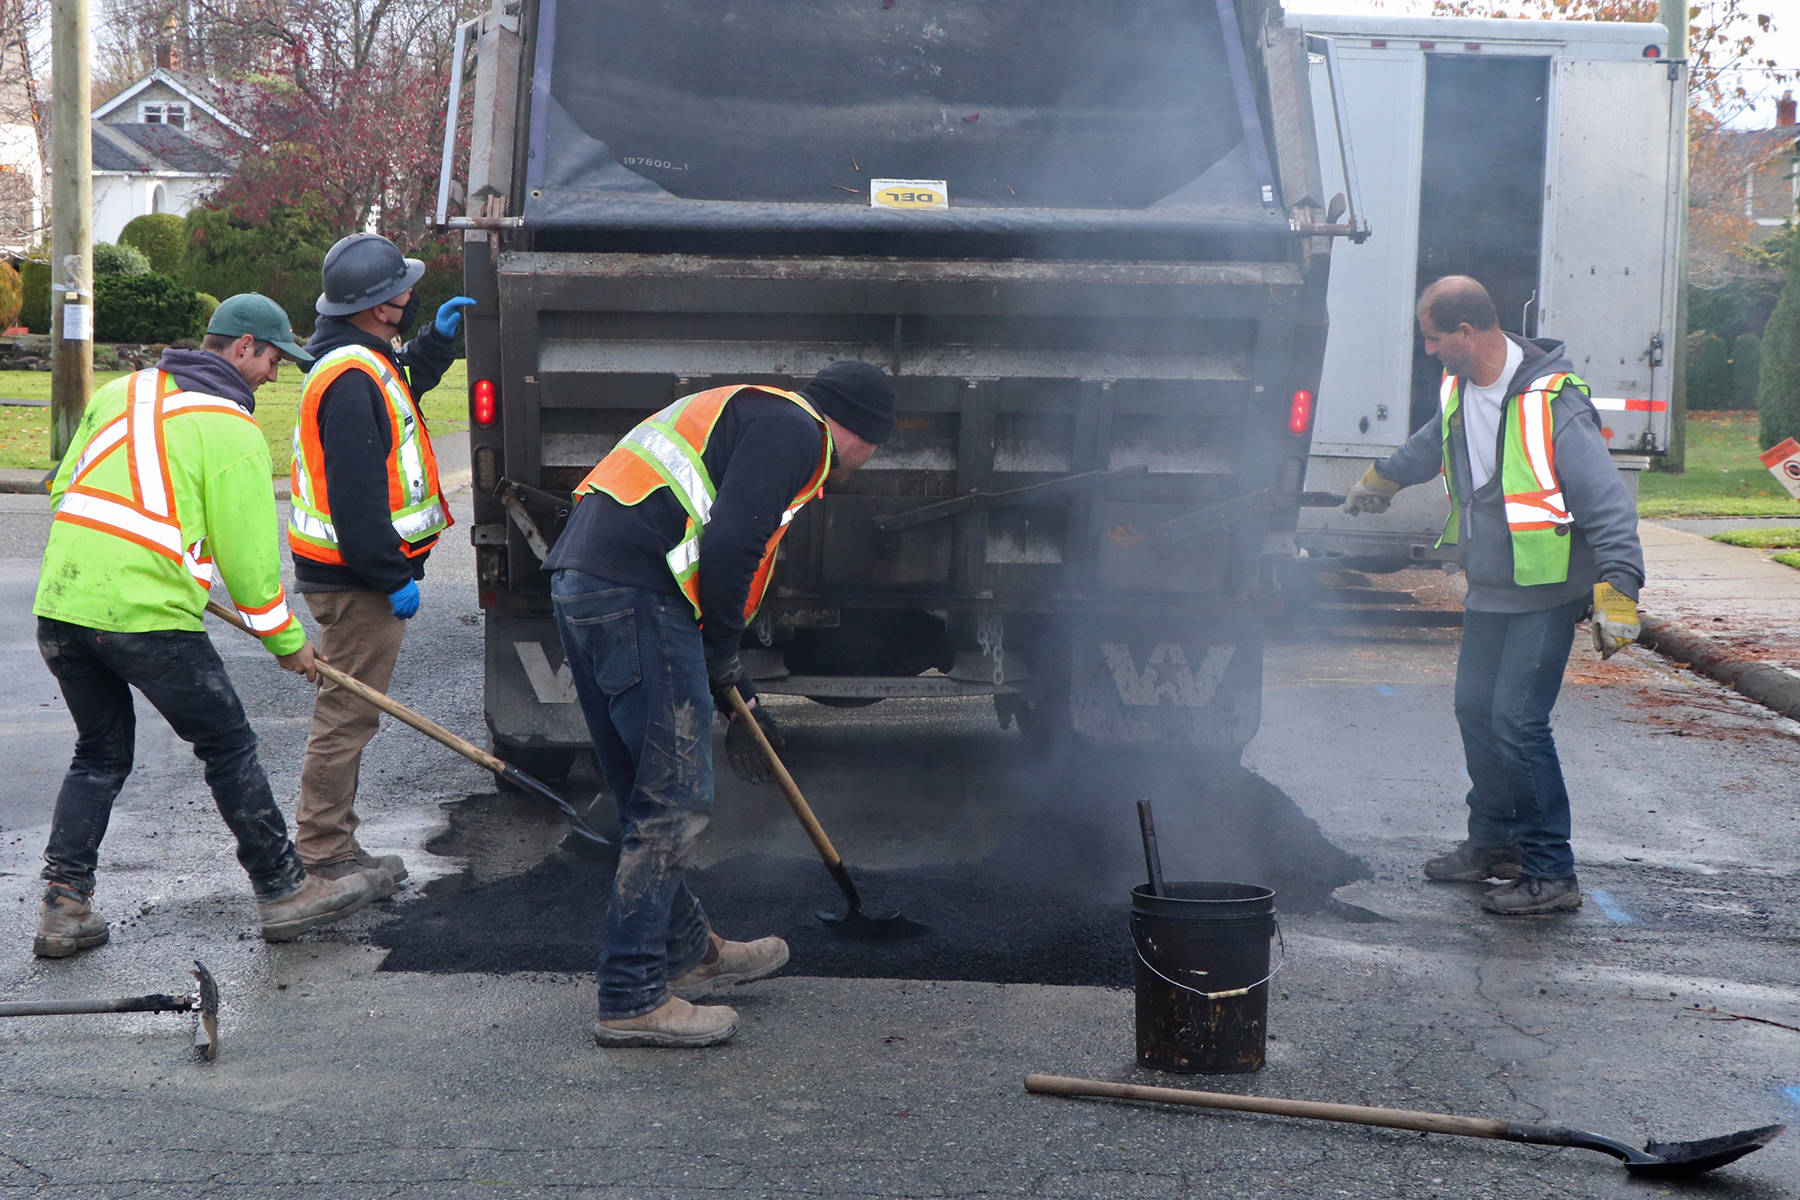 An Oak Bay municipal crew finishes off a job by laying hot asphalt in place on Dalhousie Street. The District of Oak Bay is in the process of completing a number of underground infrastructure projects, part of its long term asset renewal plan for the municipality. (Don Descoteau/News Staff)